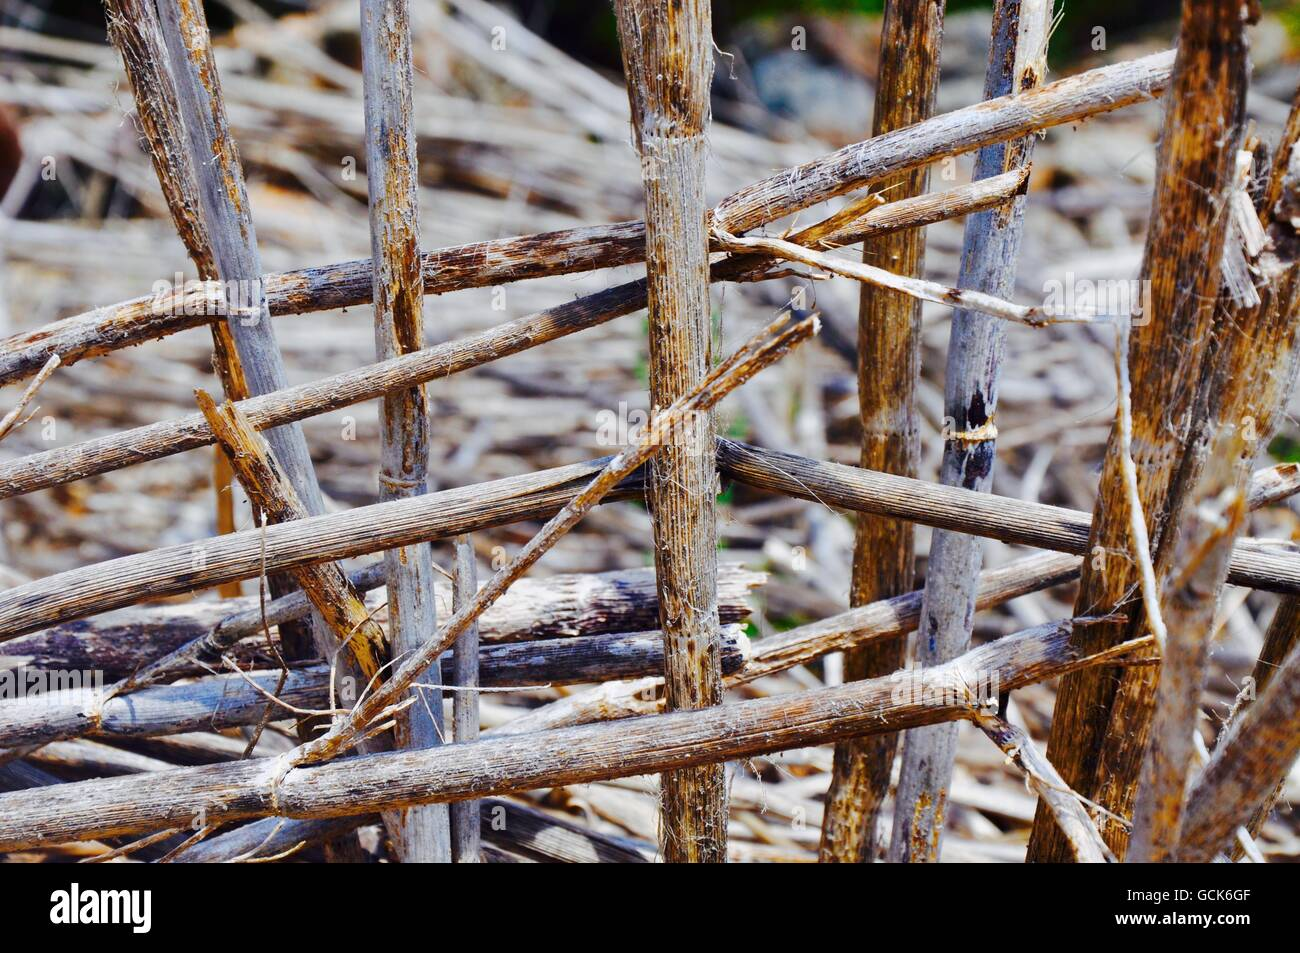 Closeup of dried bamboo branches cross hatched in an outdoor nature setting in Western Australia. - Stock Image